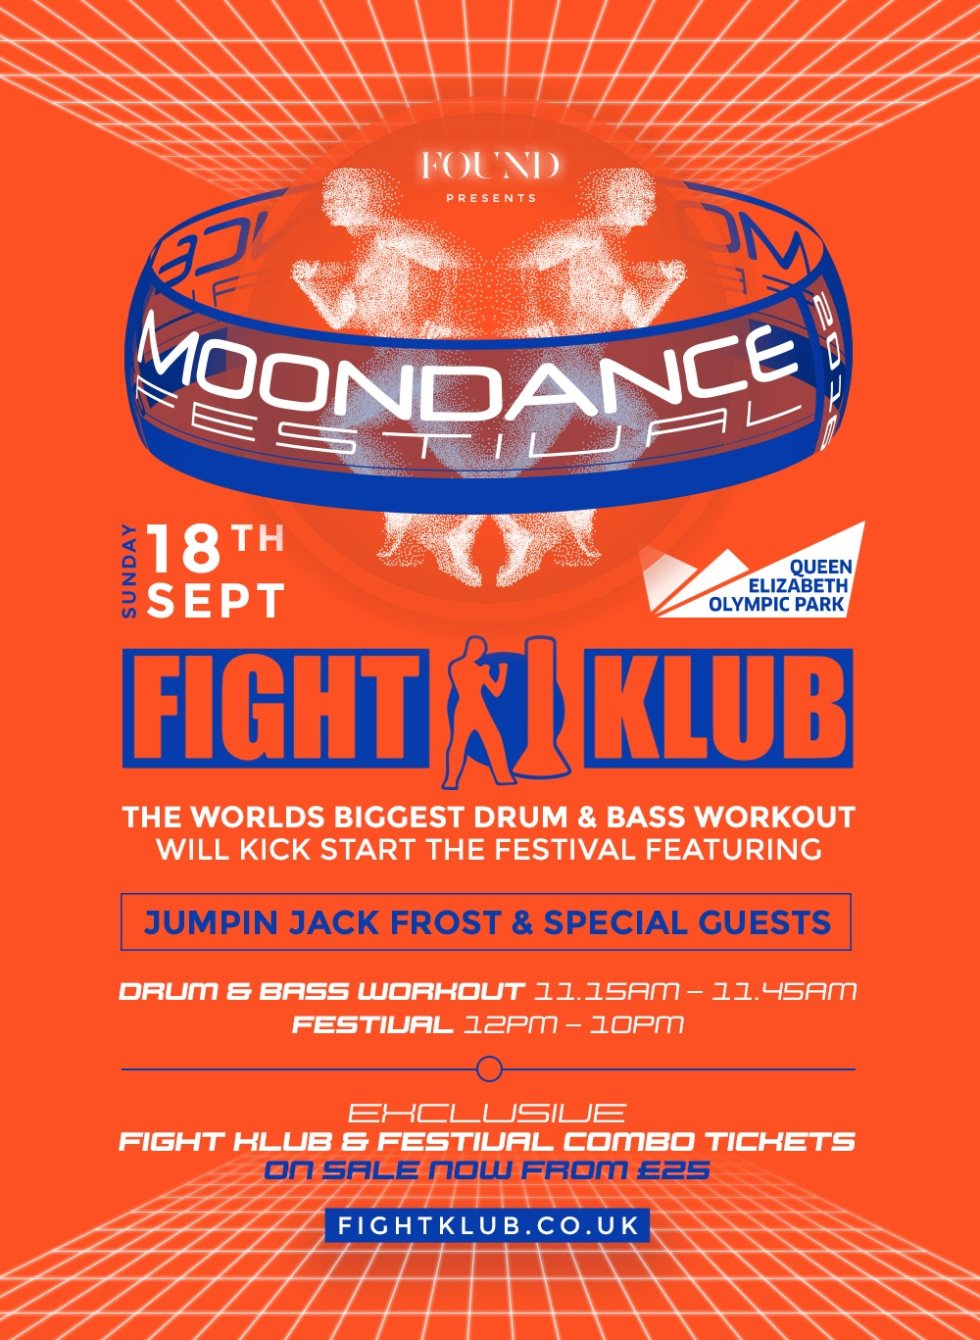 The World's Biggest Drum & Bass Work out at Moondance Festival 2016 - Flyer front